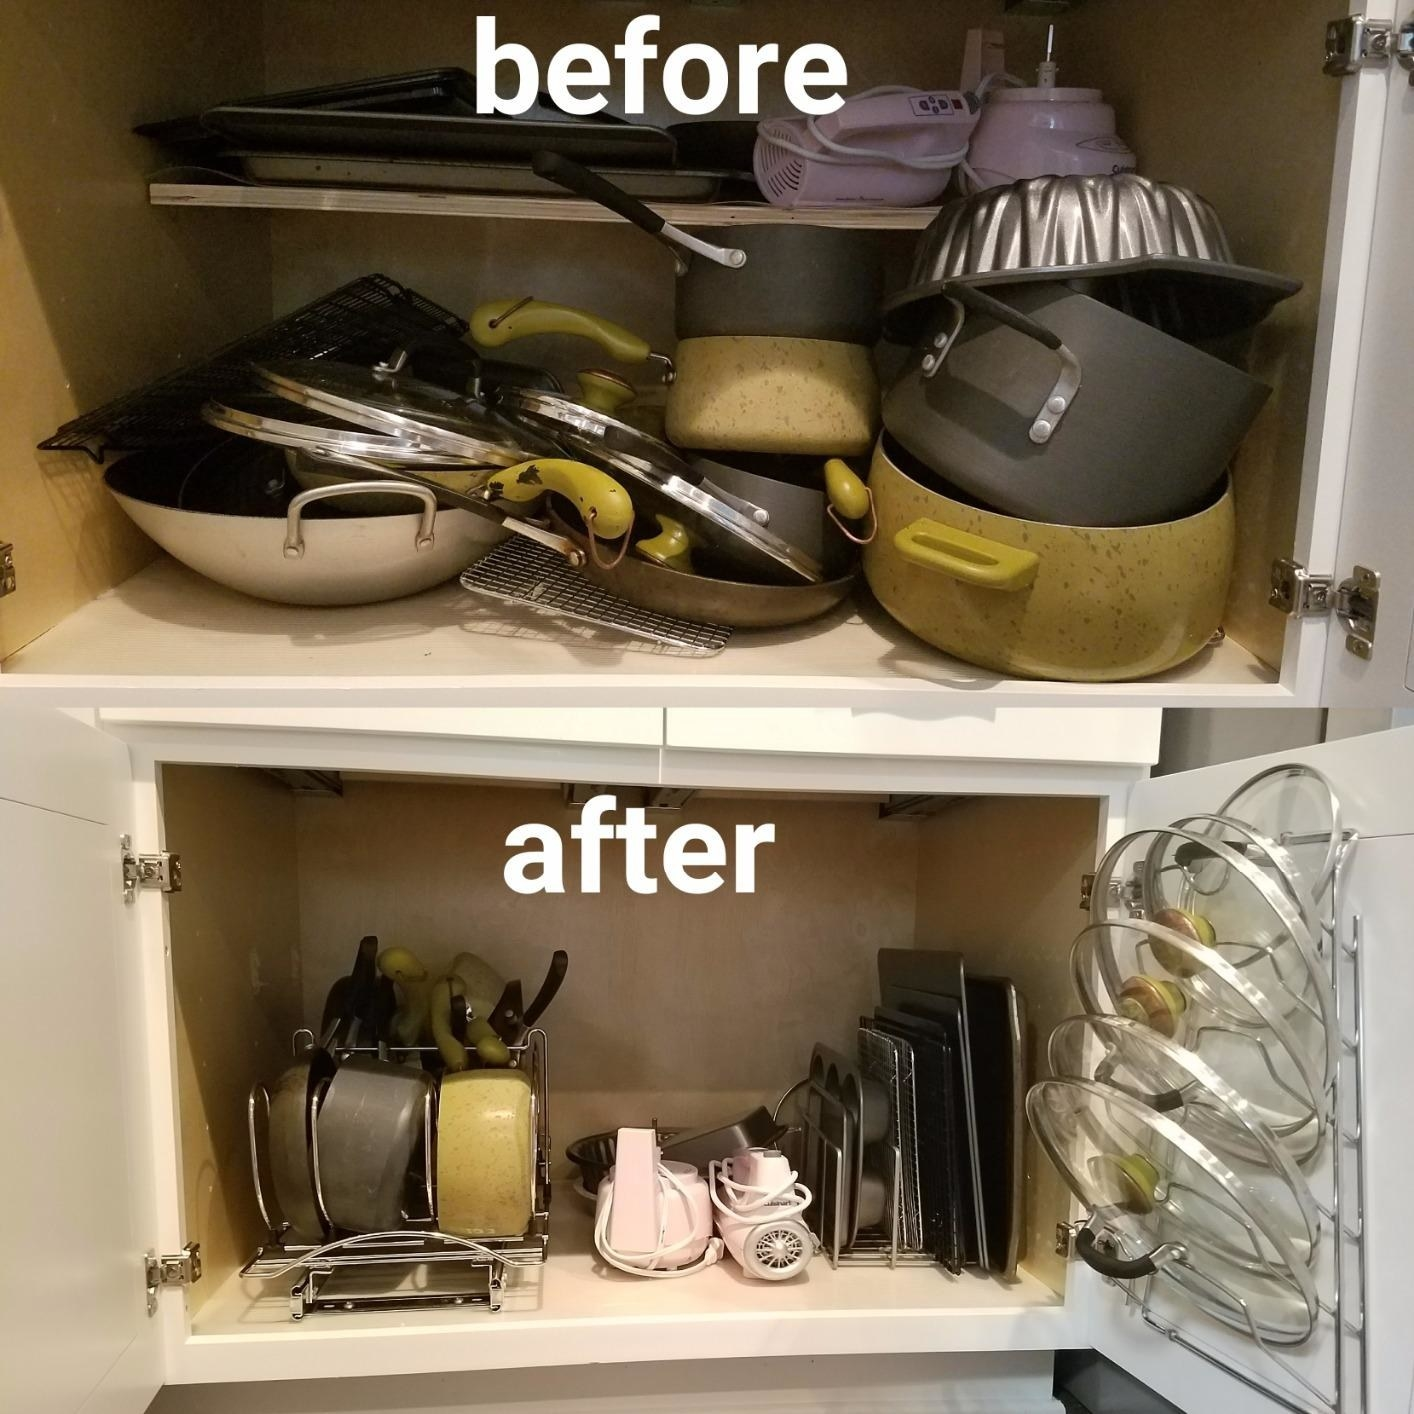 before and after showing a messy cabinet that is now orderly